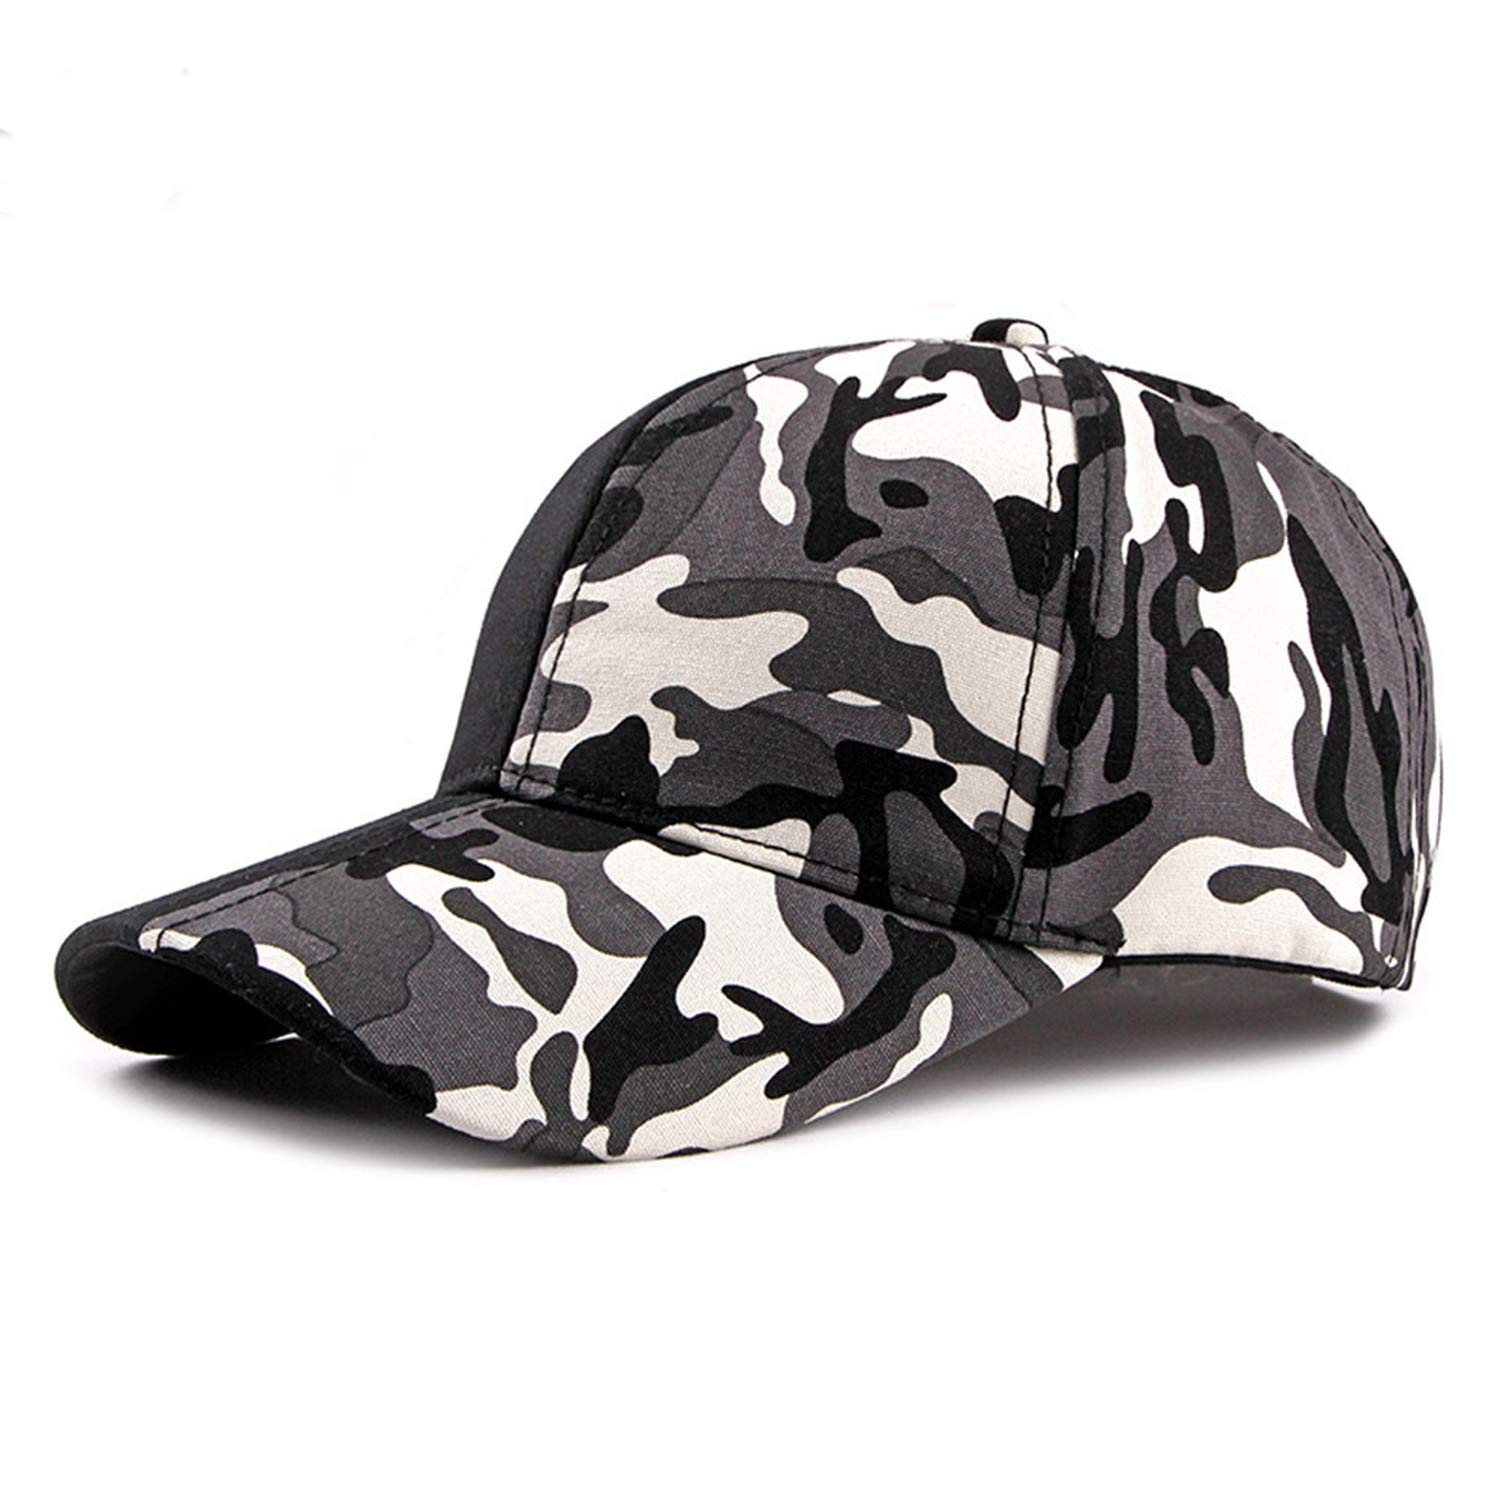 LONIY Streetwear Patchwork Camouflage Cap Hip Hop Baseball Caps Women Men Black Gorra Camuflaje Snapback Dad Hats at Amazon Womens Clothing store: